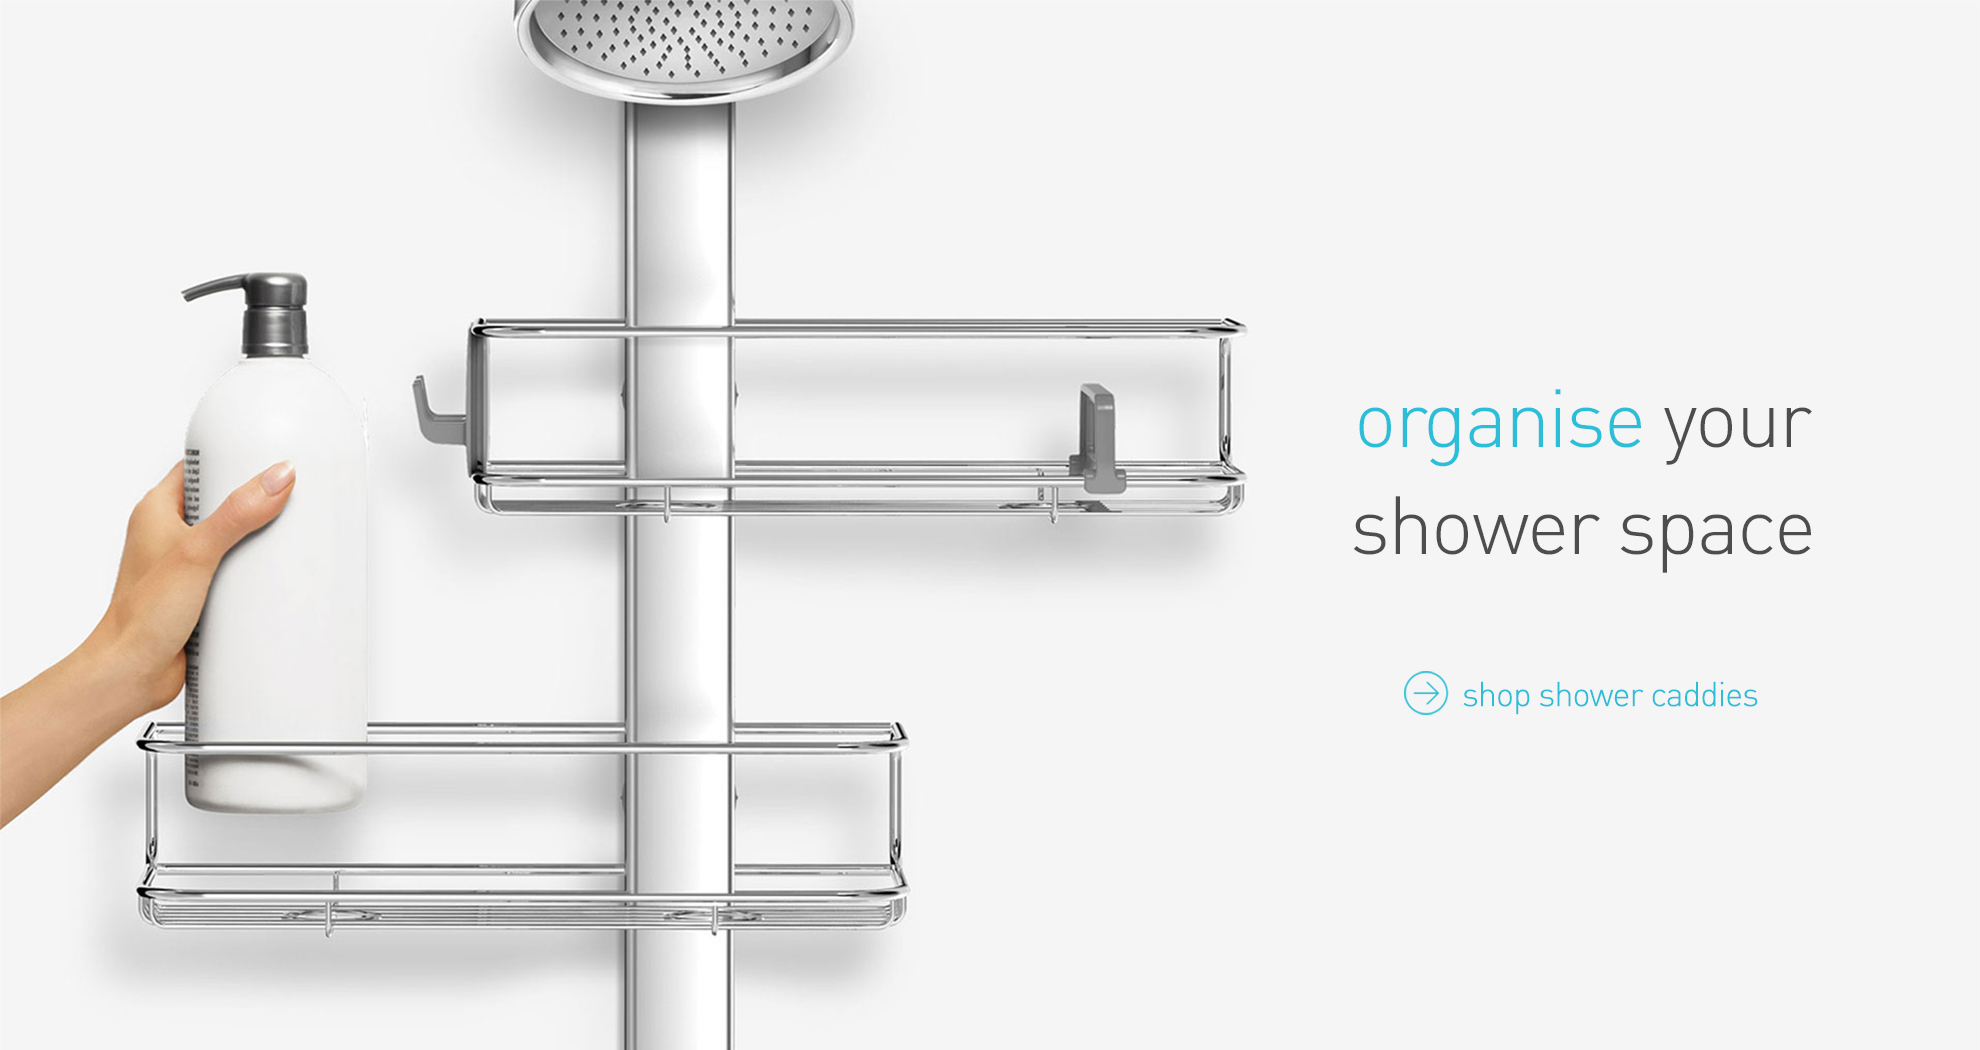 organise your shower space